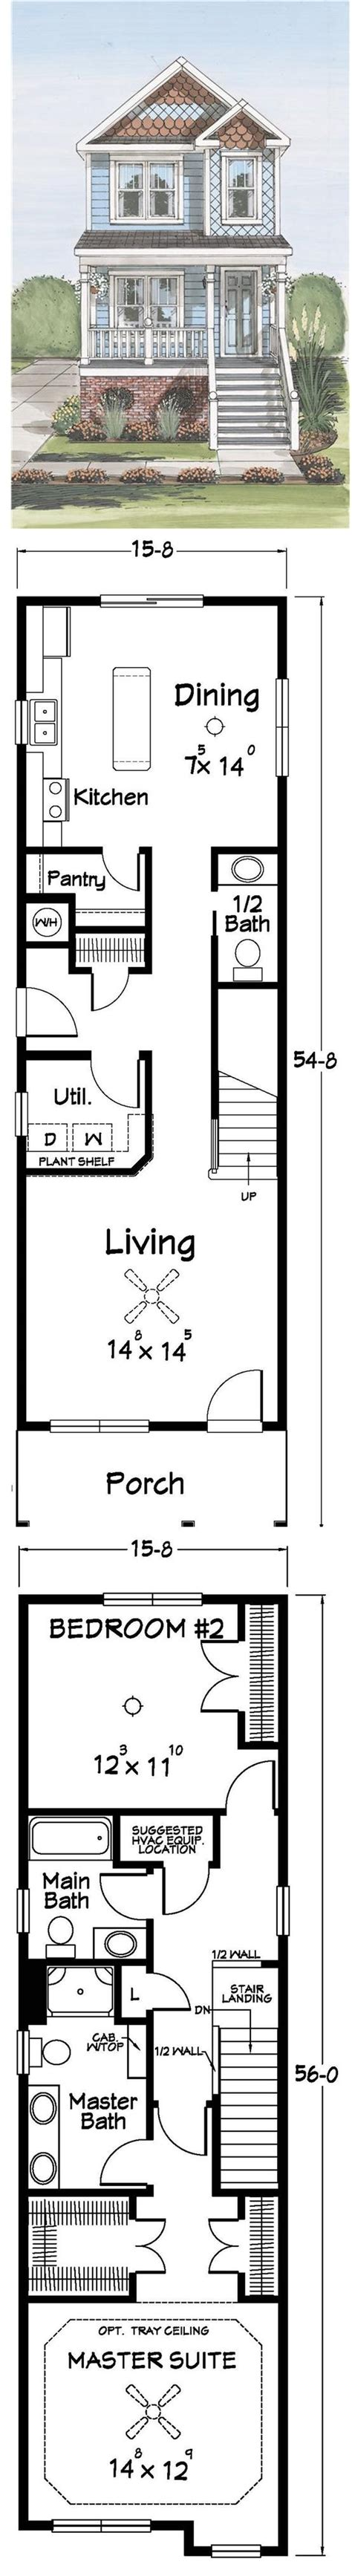 2 story house plans for narrow lots best 25 narrow house plans ideas on pinterest narrow lot house plans narrow house